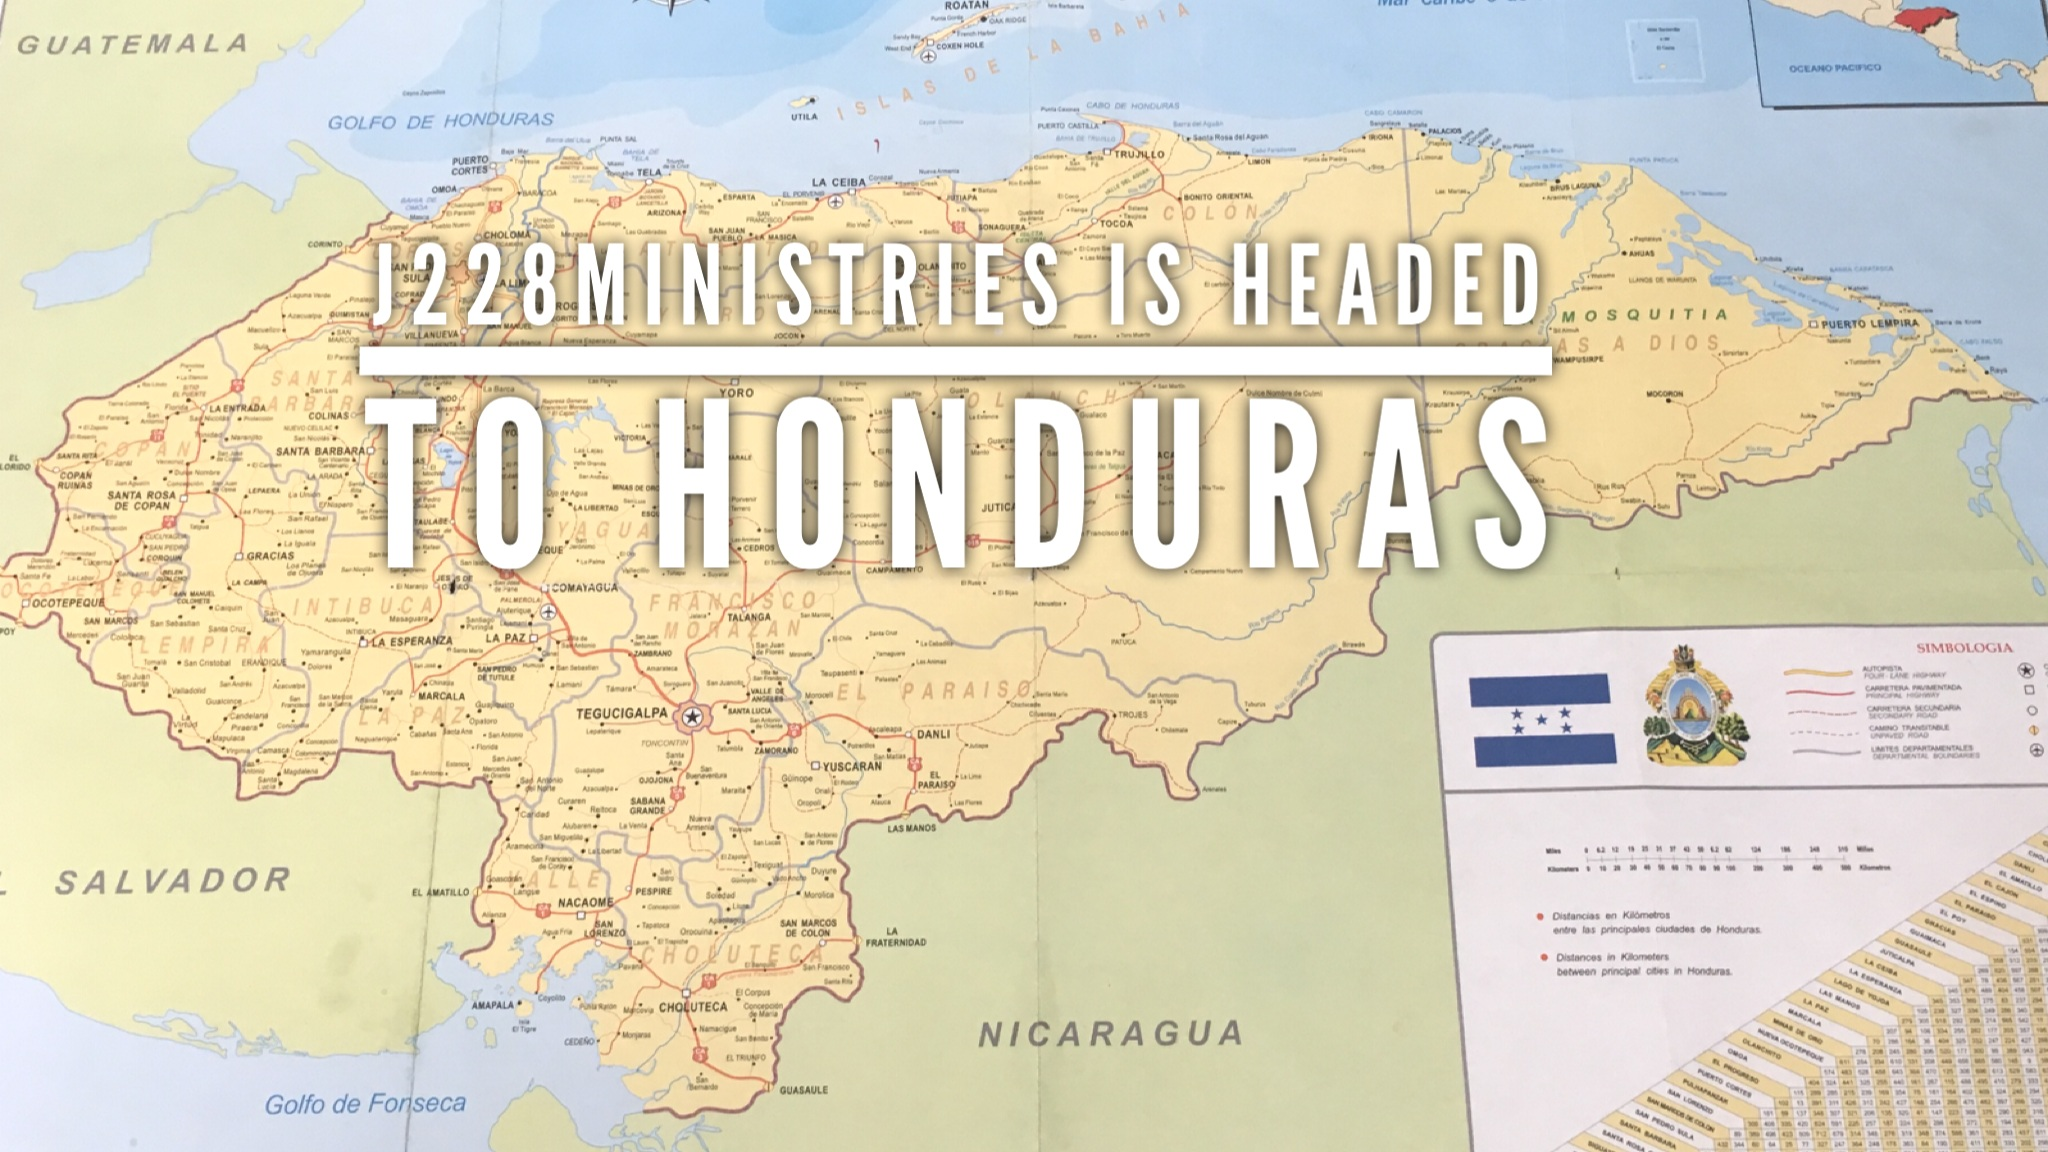 """Members of the J228 Ministries team will be headed to Honduras later this year to train local ministry leaders on using our studies to disciple the next generation. We would love to take 150 copies of the Spanish translation, """"Let the Children Come"""" and """"Deceived No More"""", as gifts to the children and churches there. If you would to donate towards the books and other resources we will be giving the children and teens we minister to in Honduras, simply click """"DONATE"""" below. If like more information on providing financing for other mission related projects, please click  HERE ."""